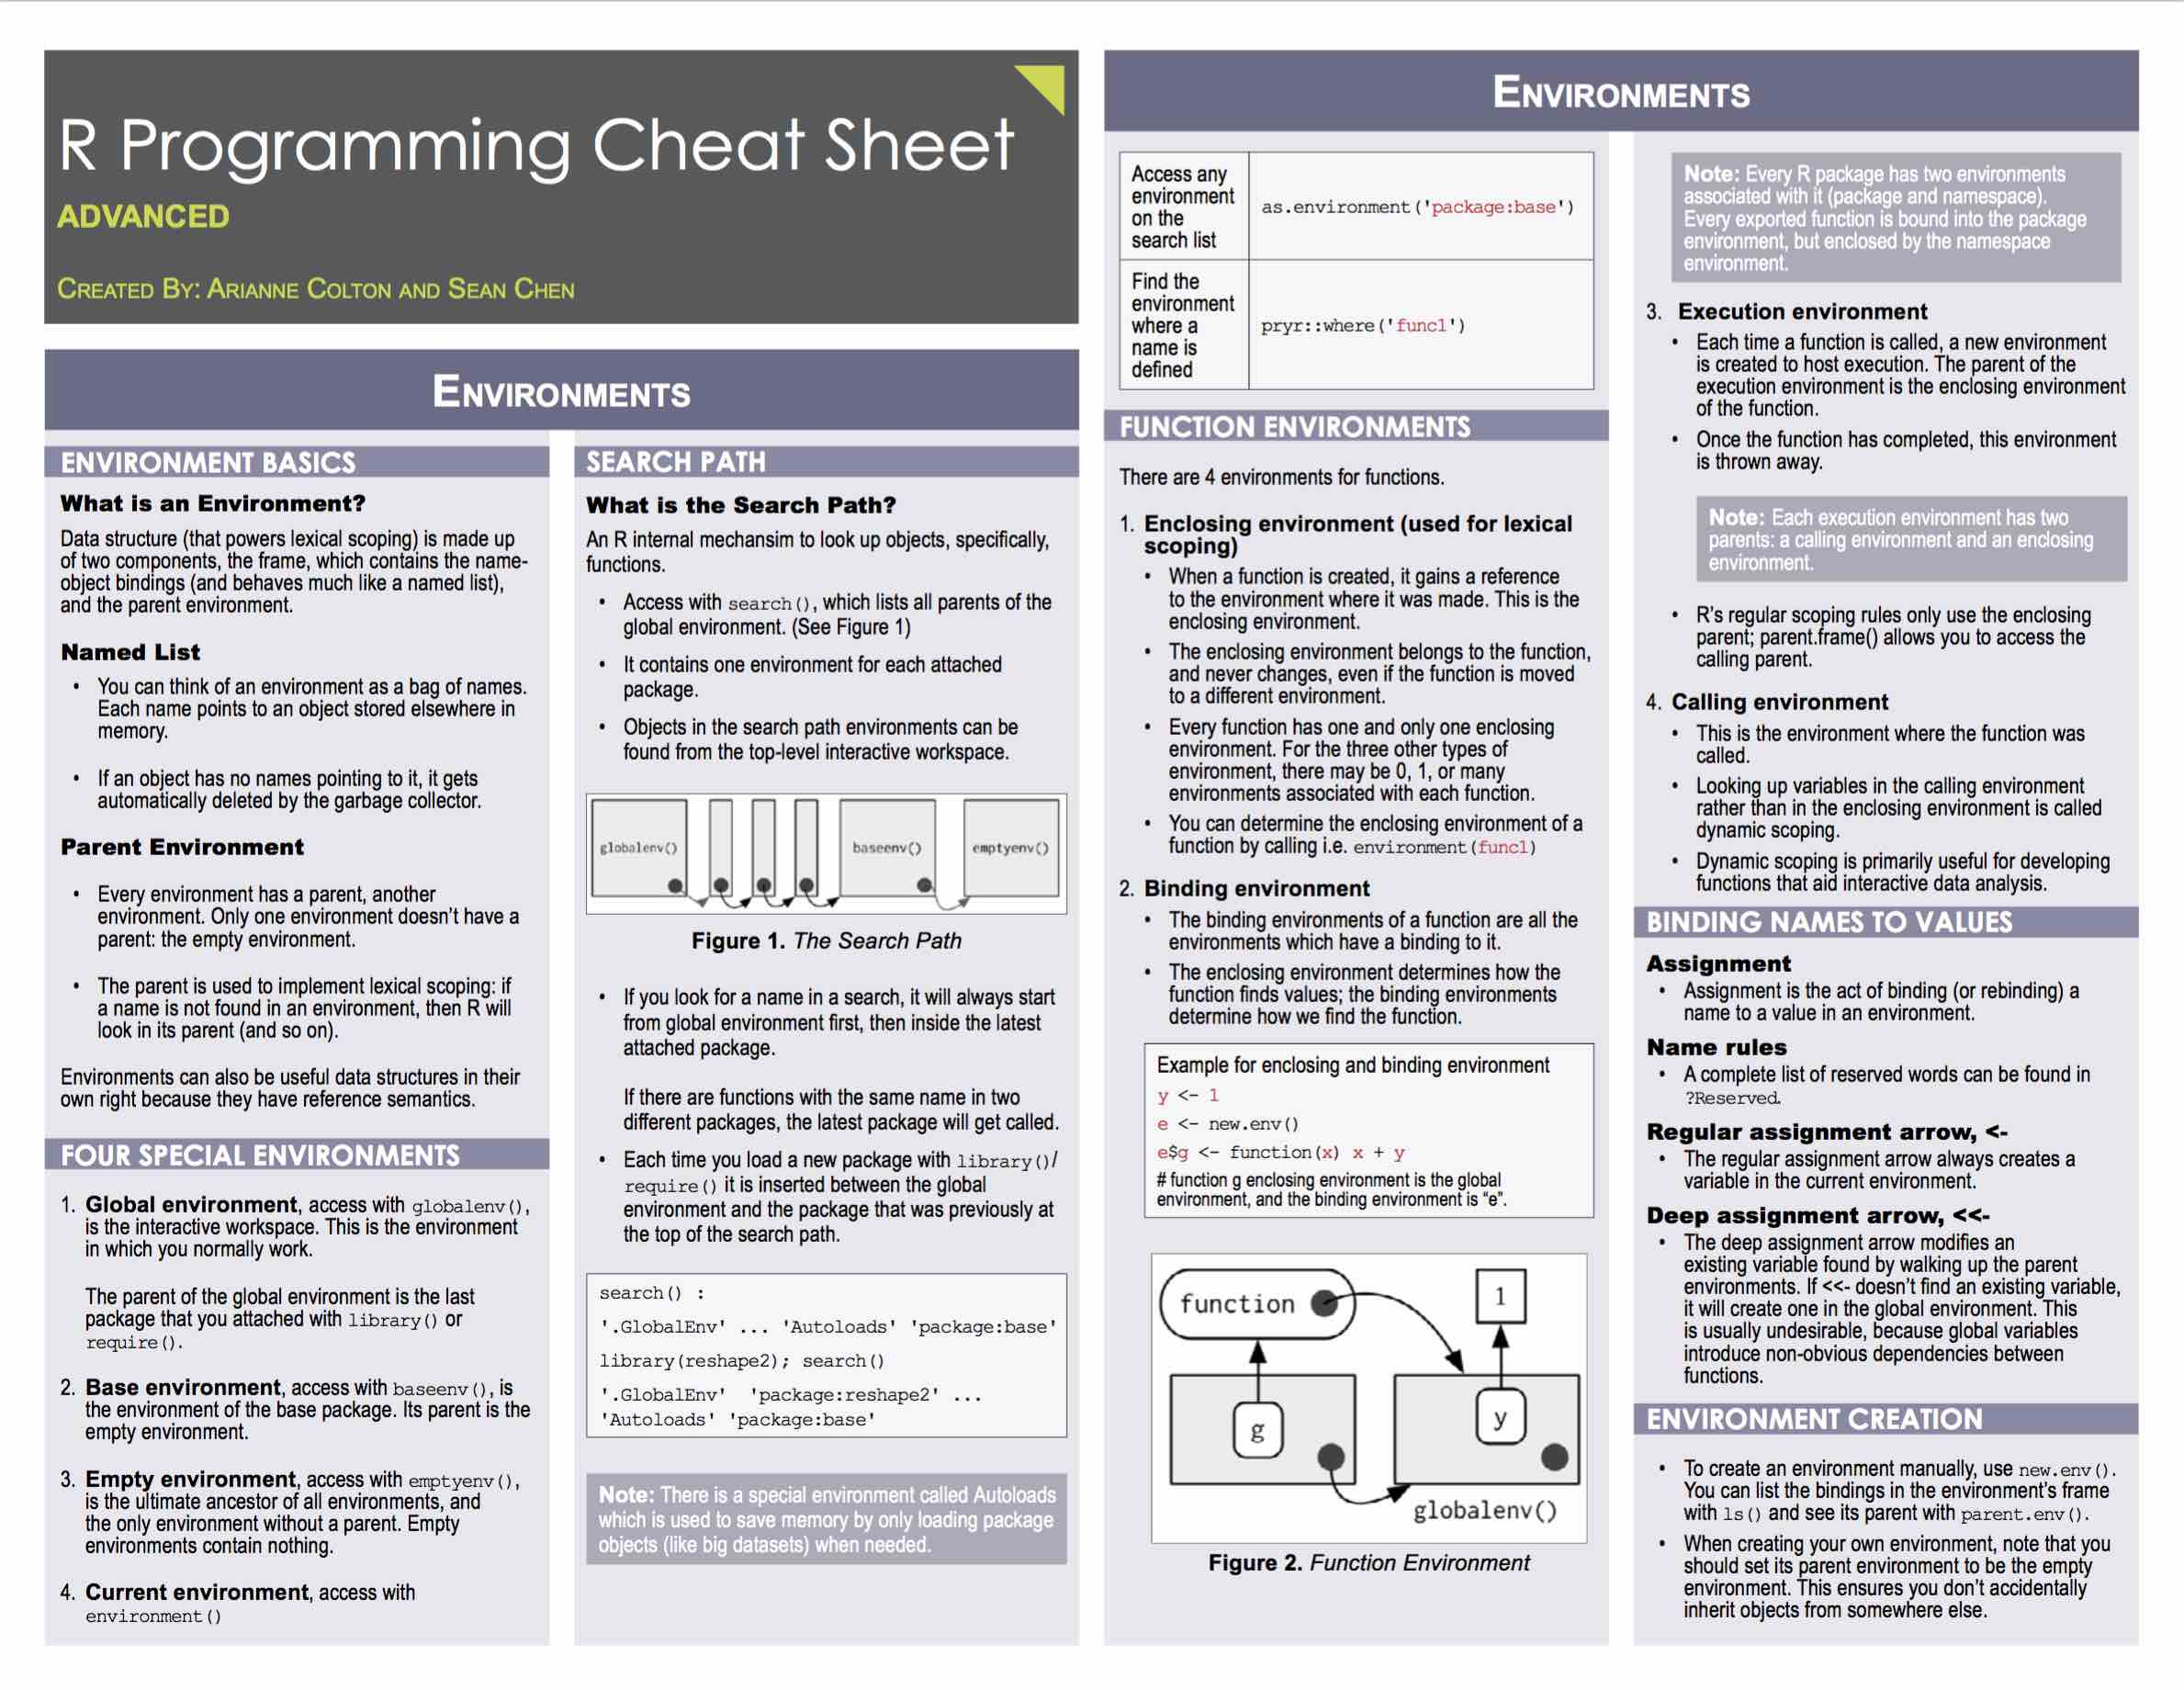 science cheat sheet People often throw around certain data terms without actually knowing what they mean here's a cheat sheet that will explain the terms.